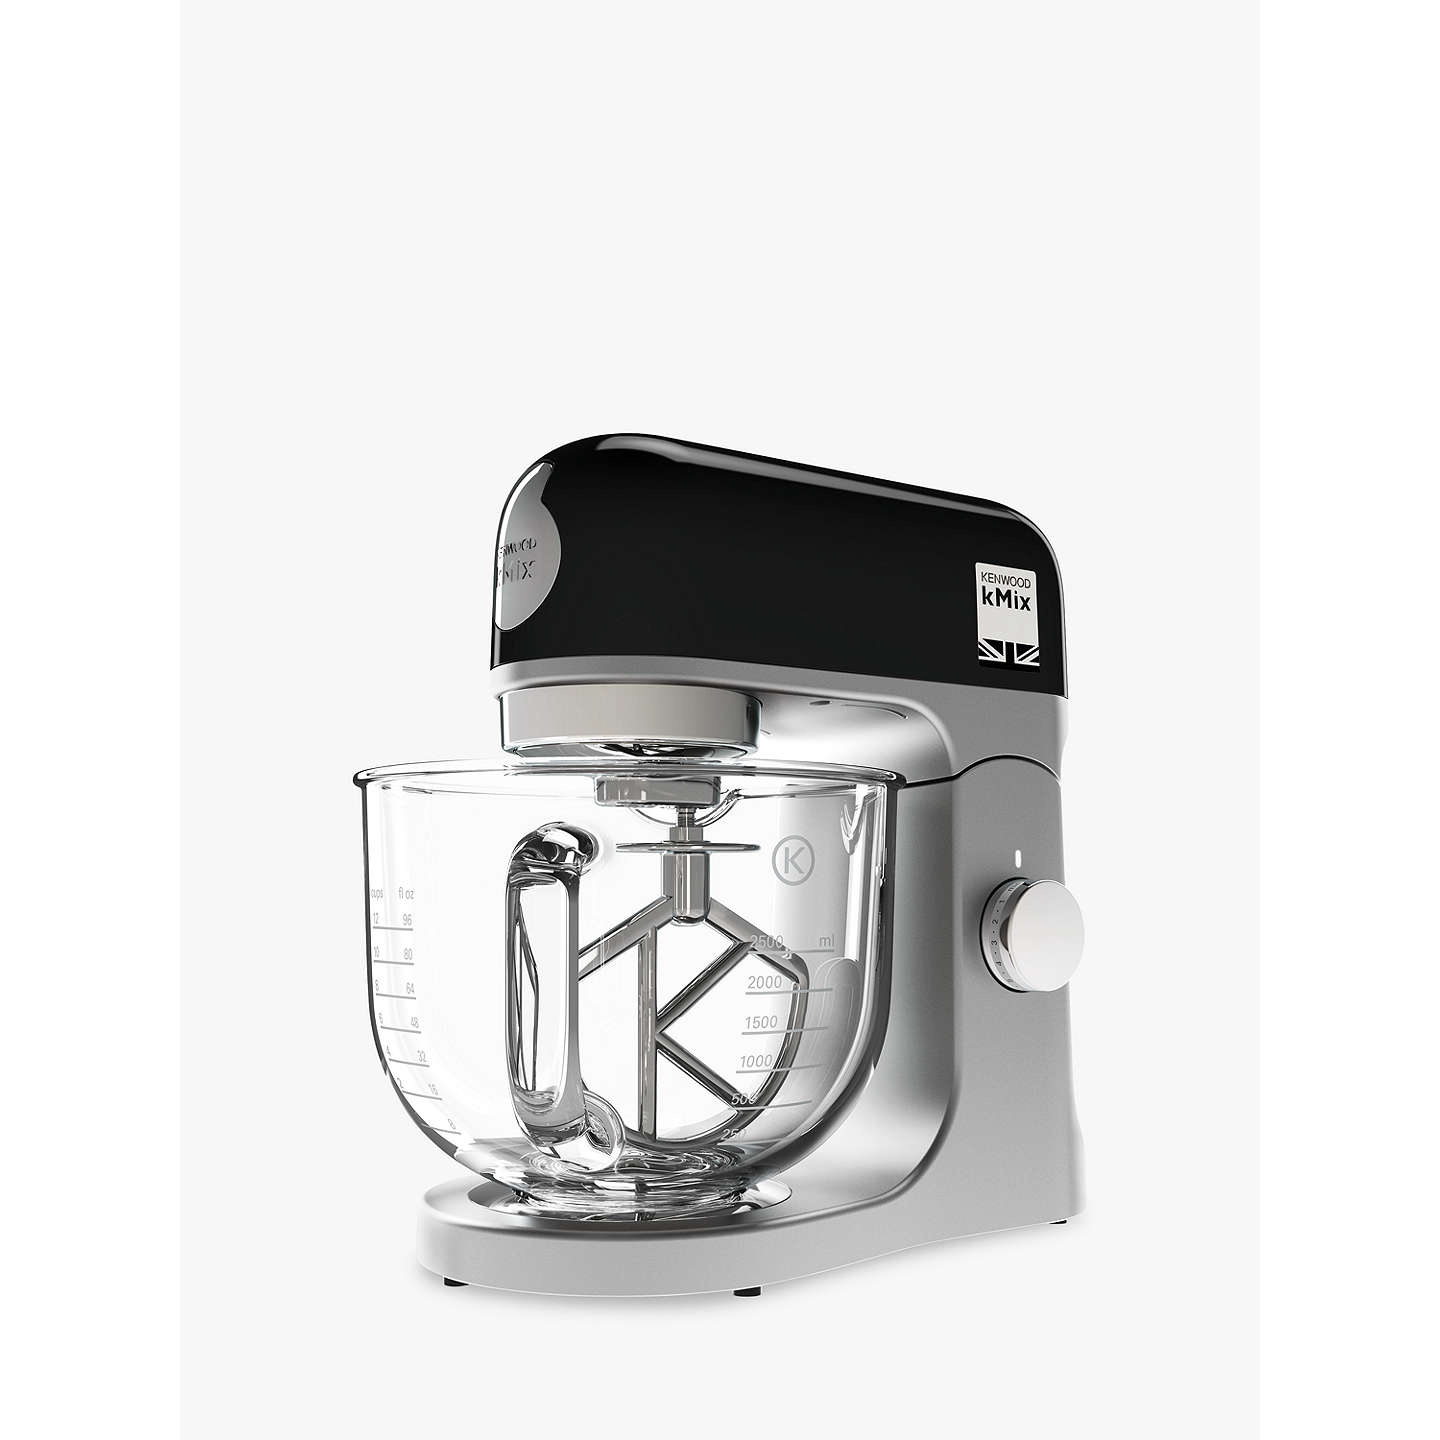 BuyKenwood kMix KMX754 Stand Mixer, Black Online at johnlewis.com